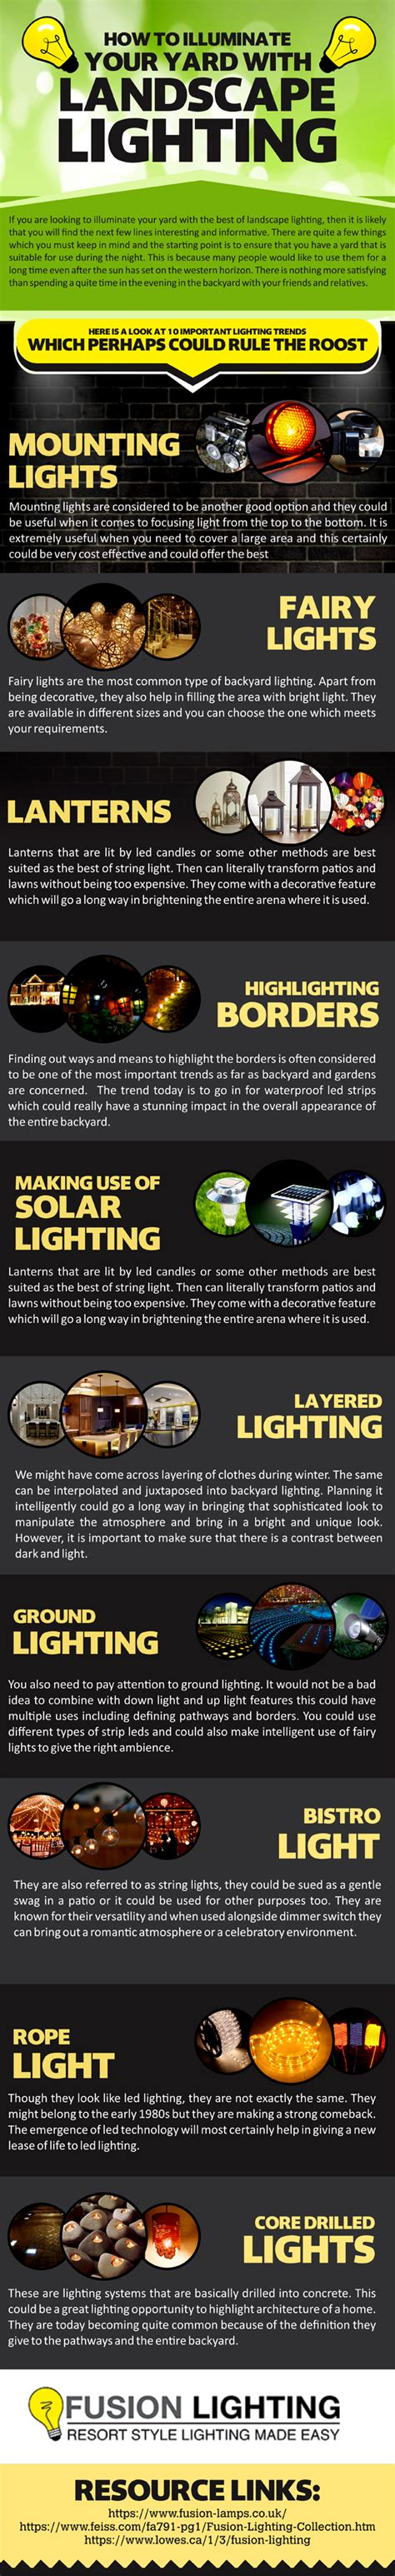 how to do landscape lighting how to illuminate your yard with landscape lighting kukun